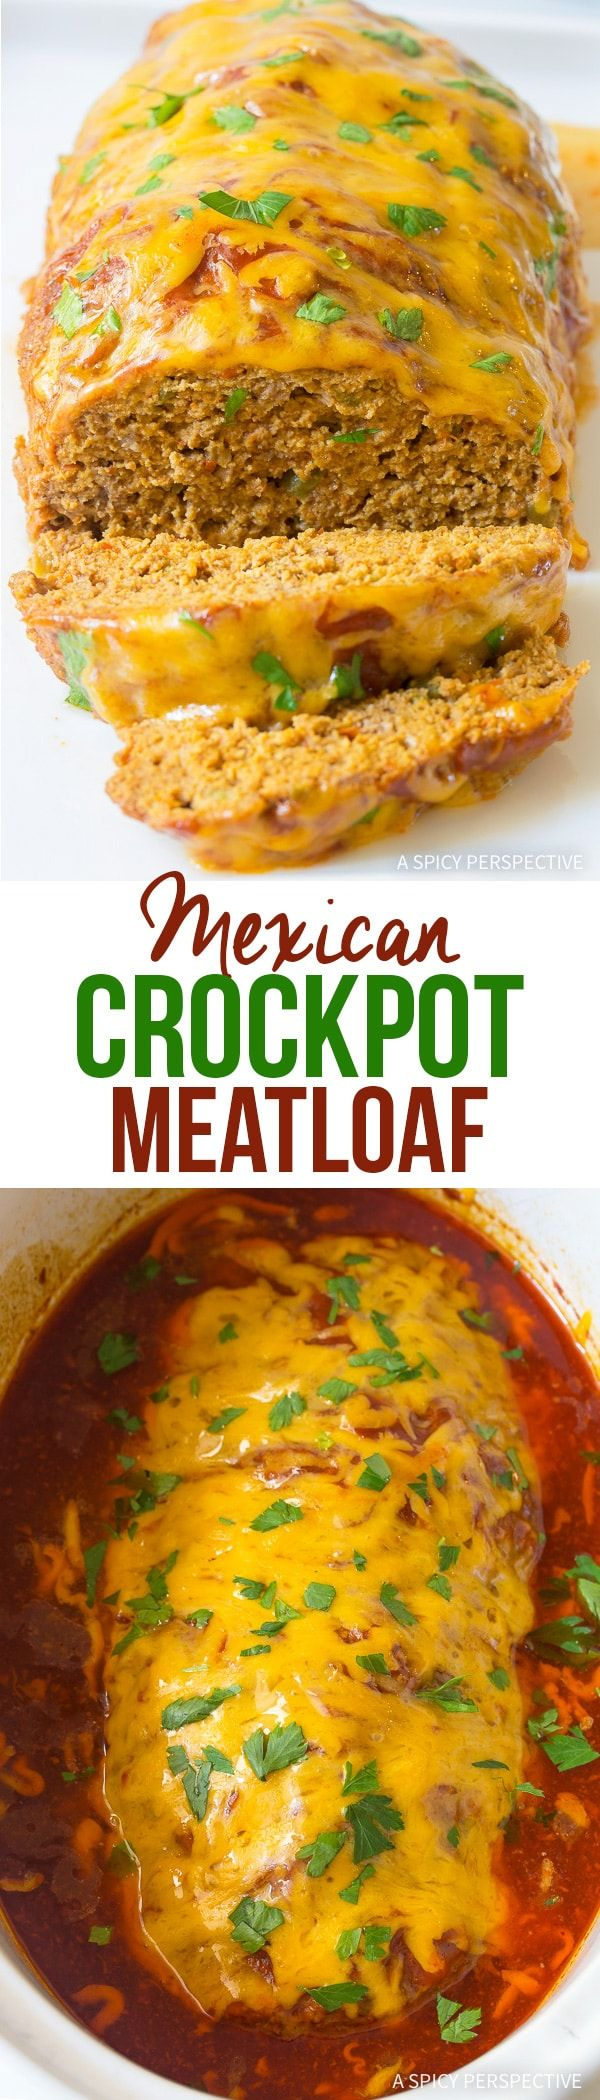 Mexican Crockpot Meatloaf Recipe - A fun twist on classic meatloaf, you can make in your slow cooker. Zesty, loaded with hidden vegetables, and ultra moist! via @spicyperspectiv